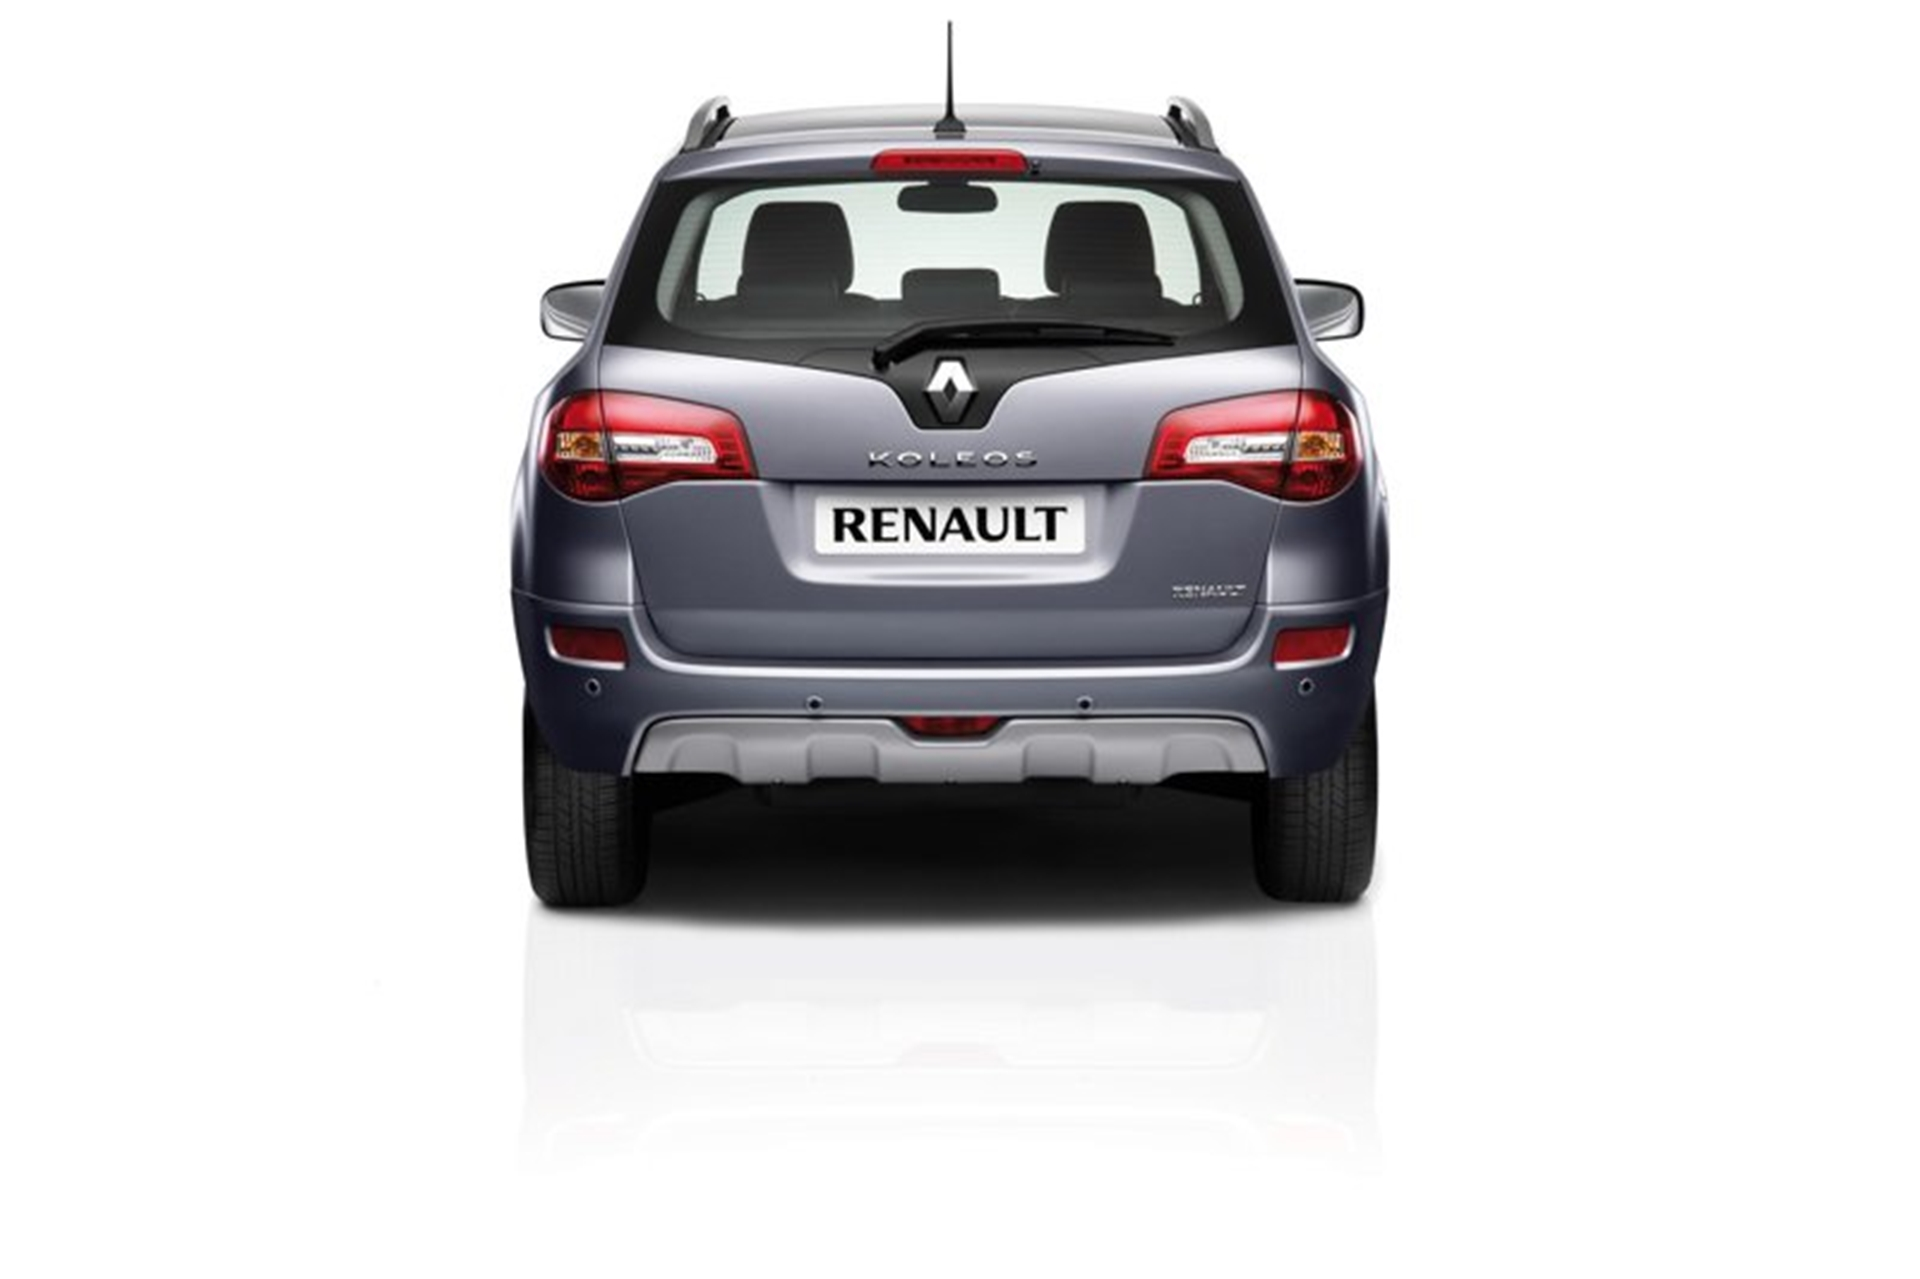 Renault Koleos Rear View